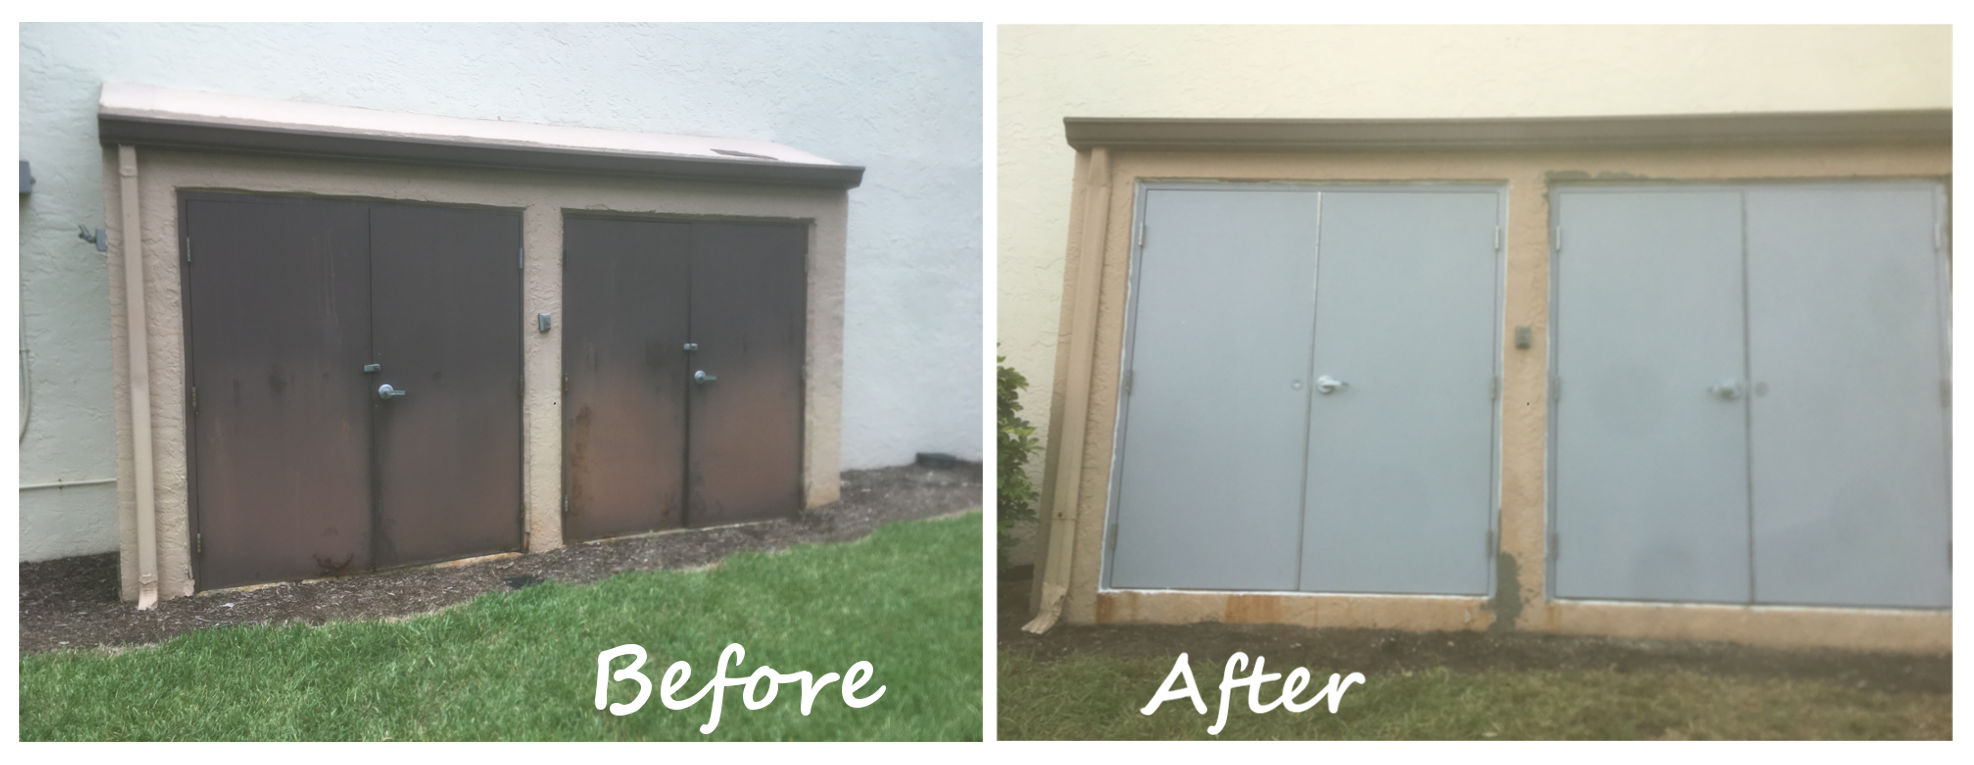 Before/After Door Replacement